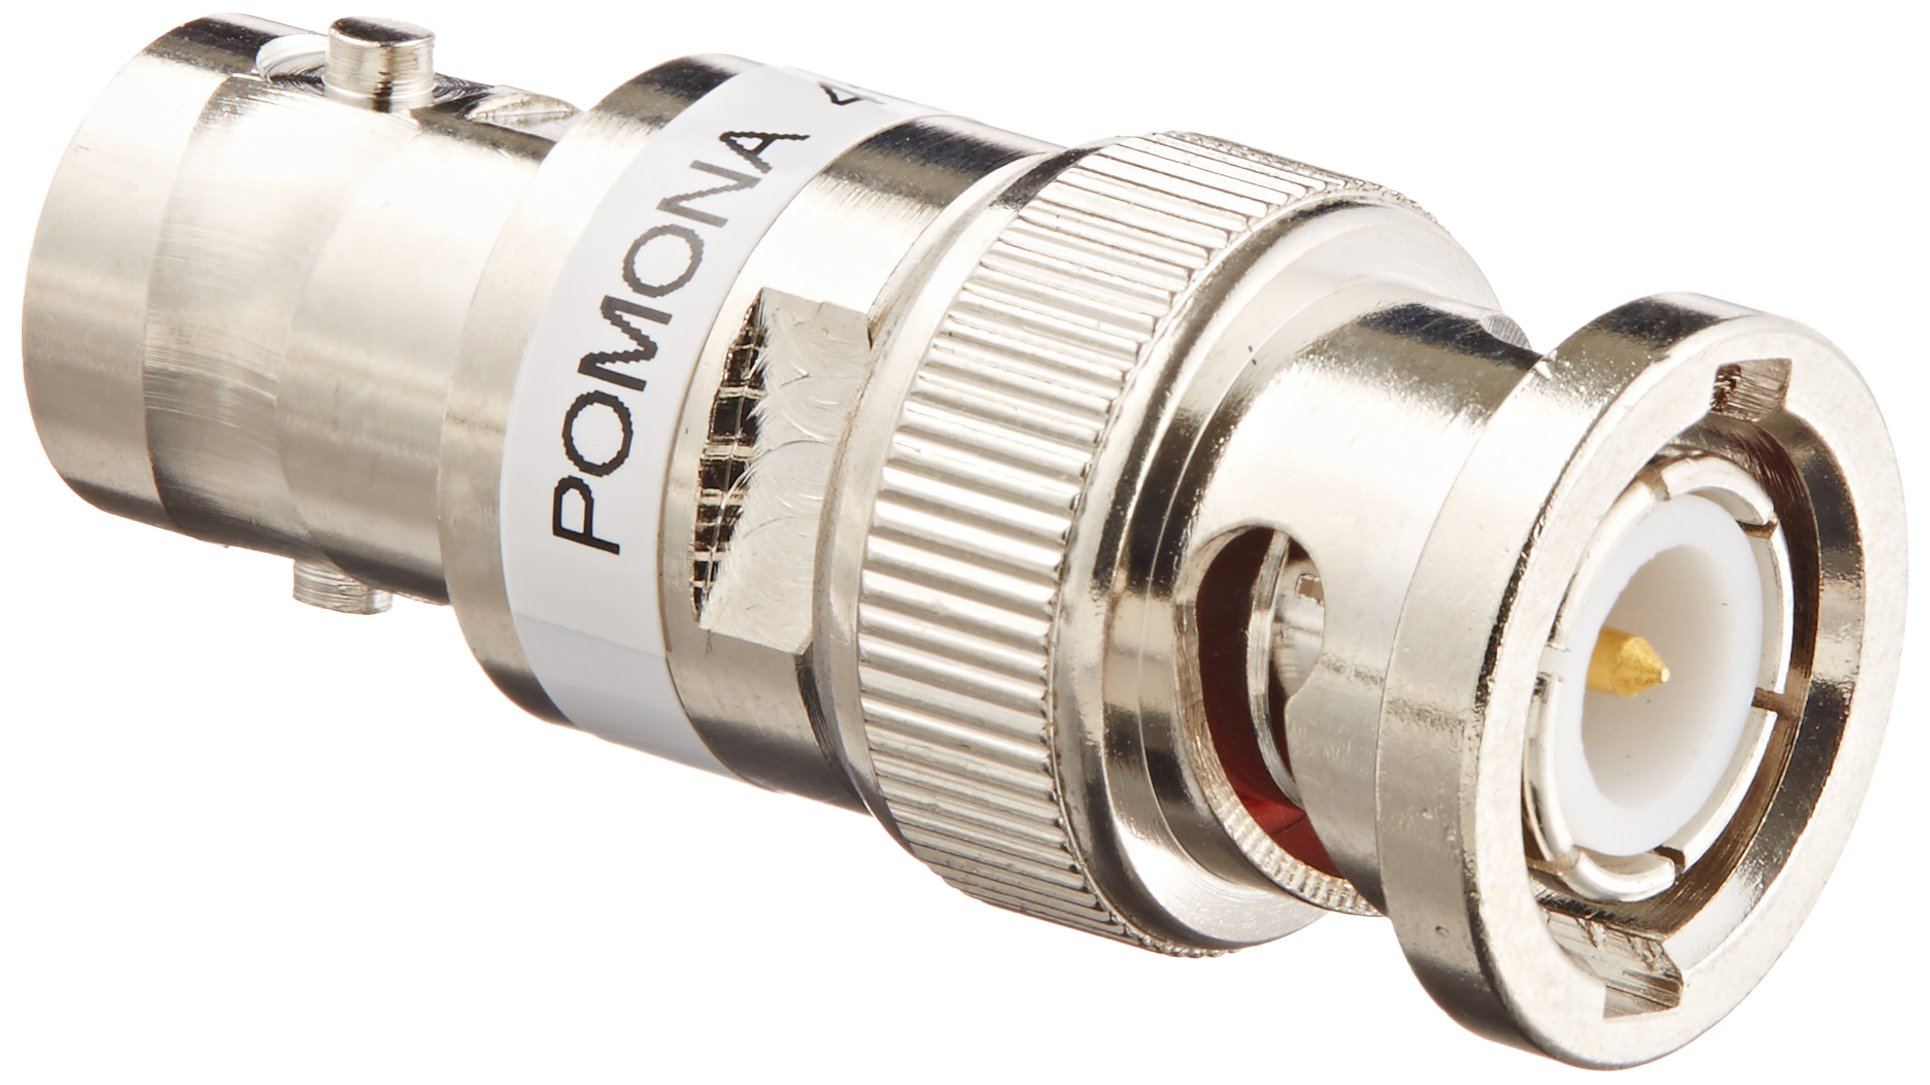 Pomona 4108-6DB Brass BNC Male and Female Attenuator, 50 ohms Nominal Impedance, 10db Attenuator